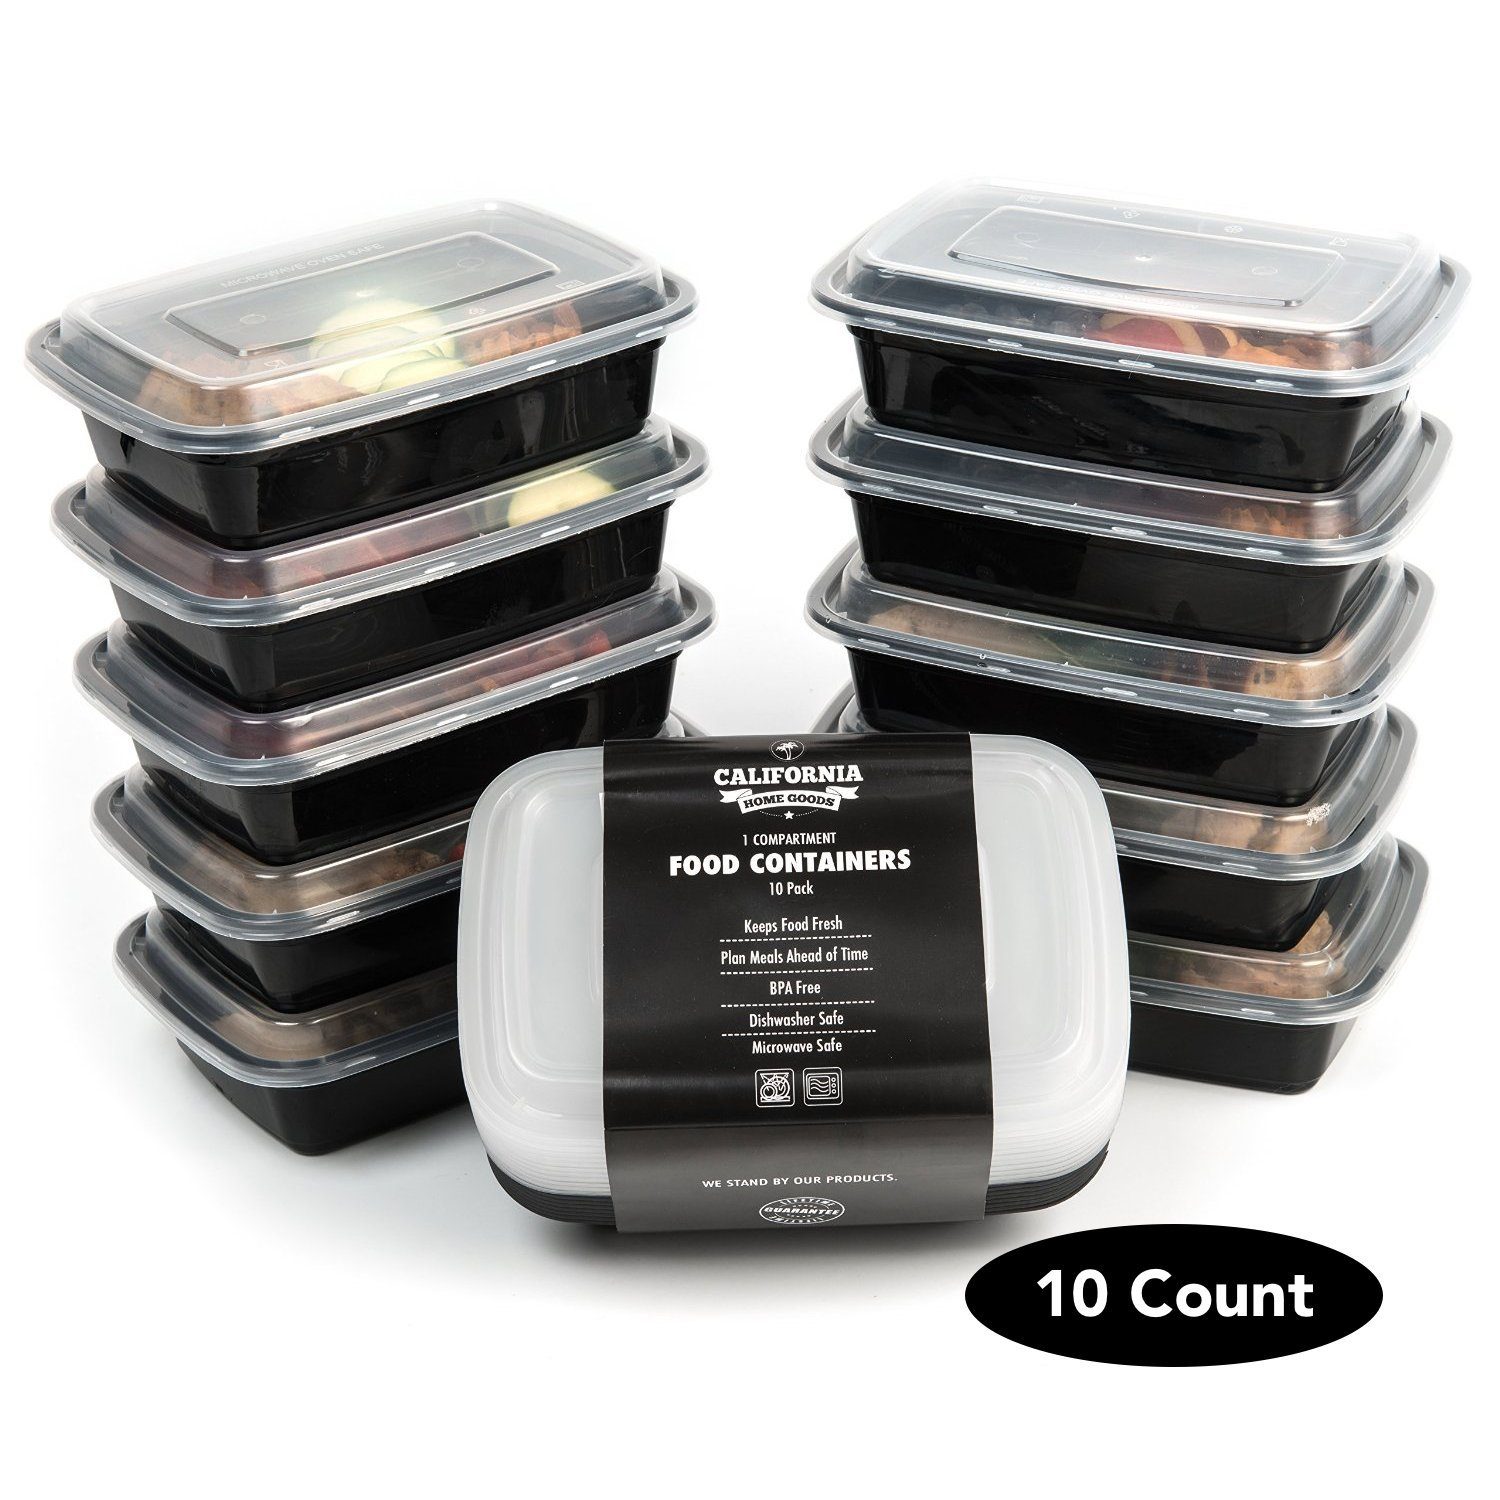 1 Compartment Reusable Food Storage Containers, Set of 10